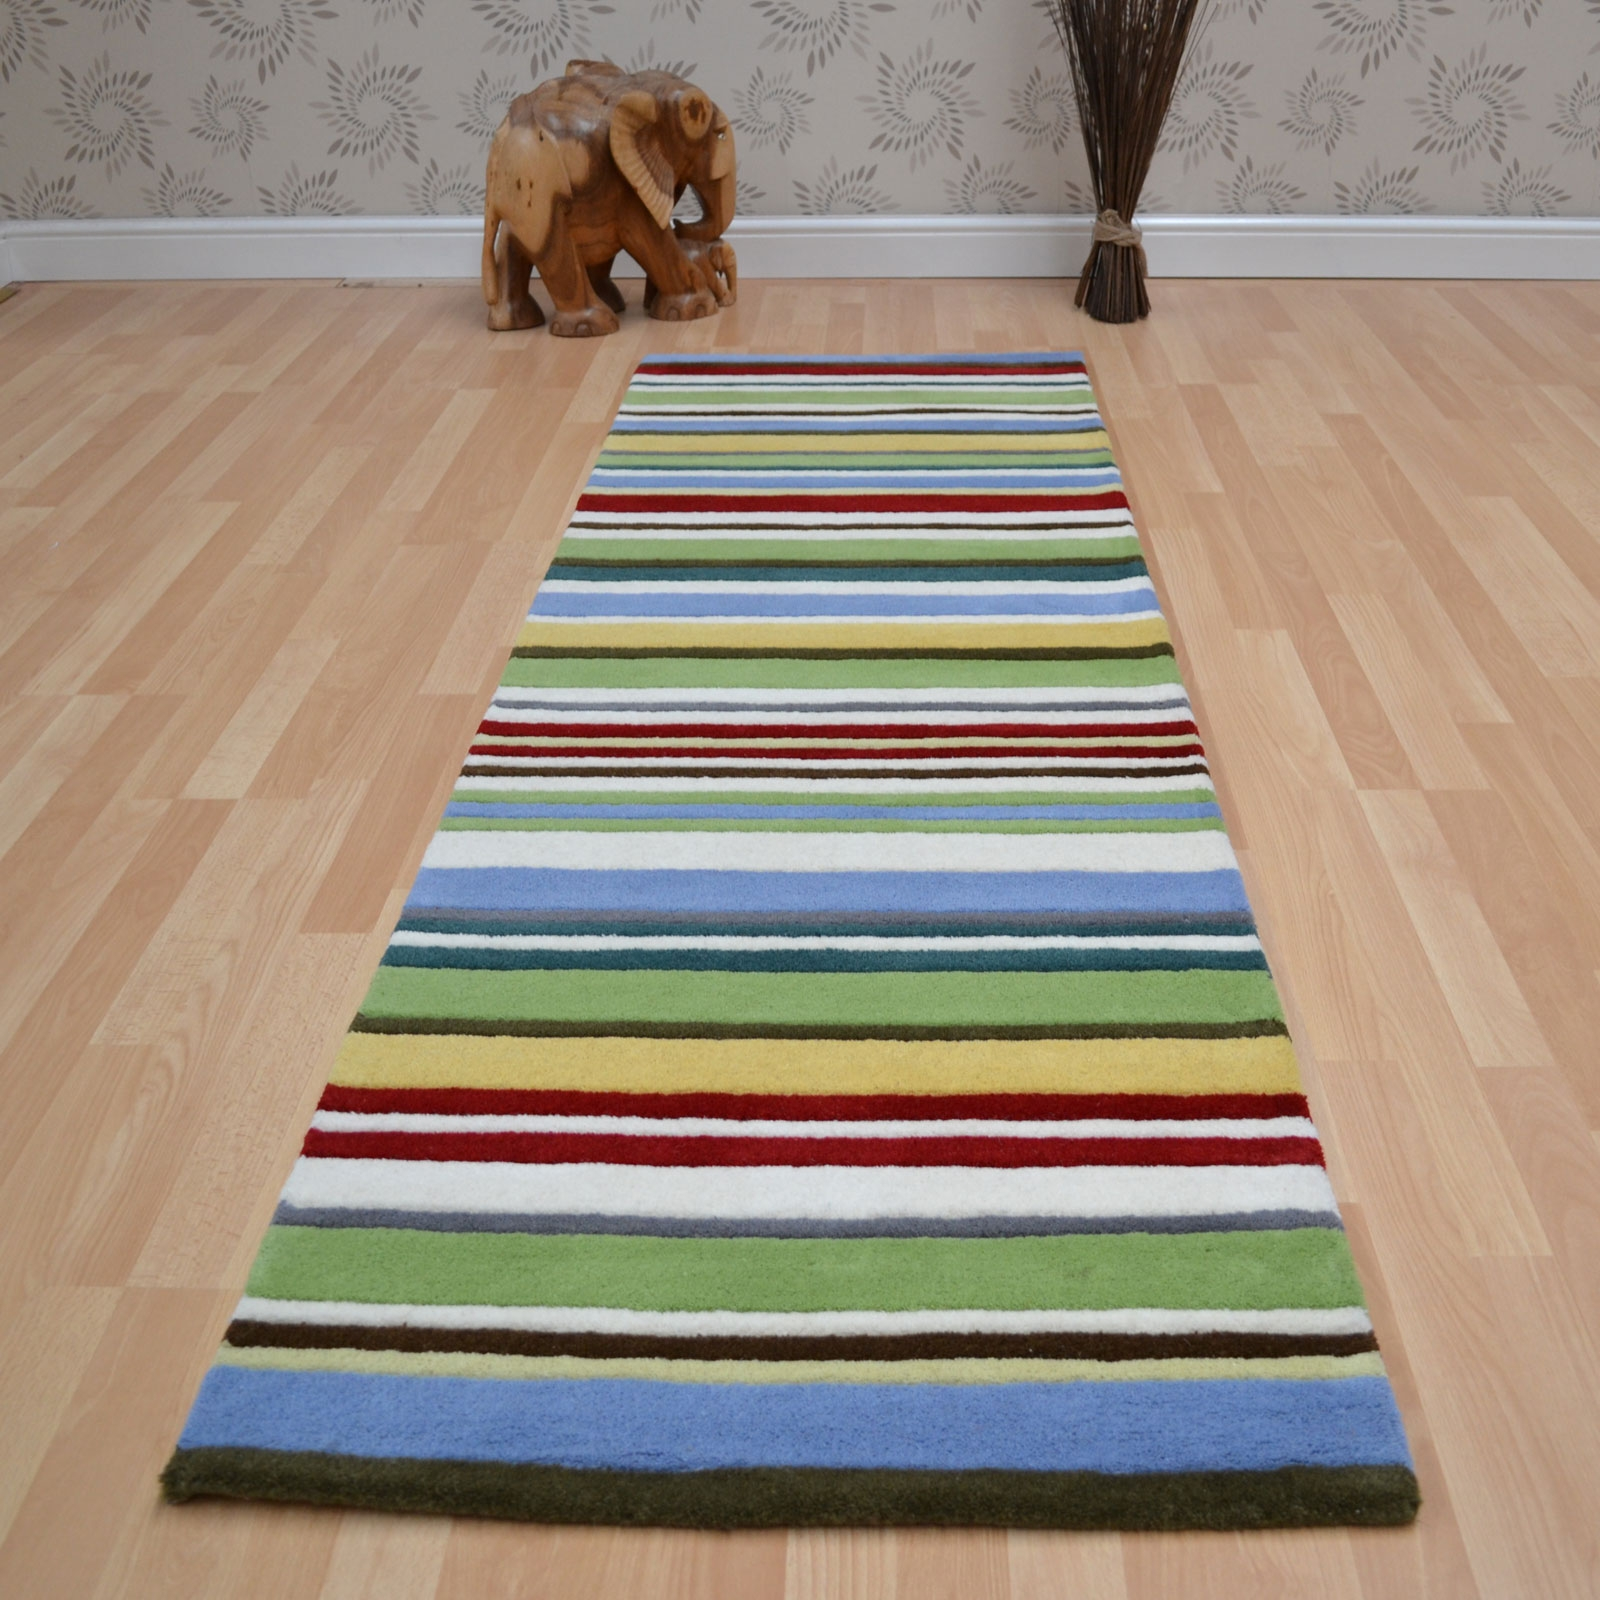 Striped Runner Rugs Roselawnlutheran Regarding Striped Mats (Image 15 of 15)